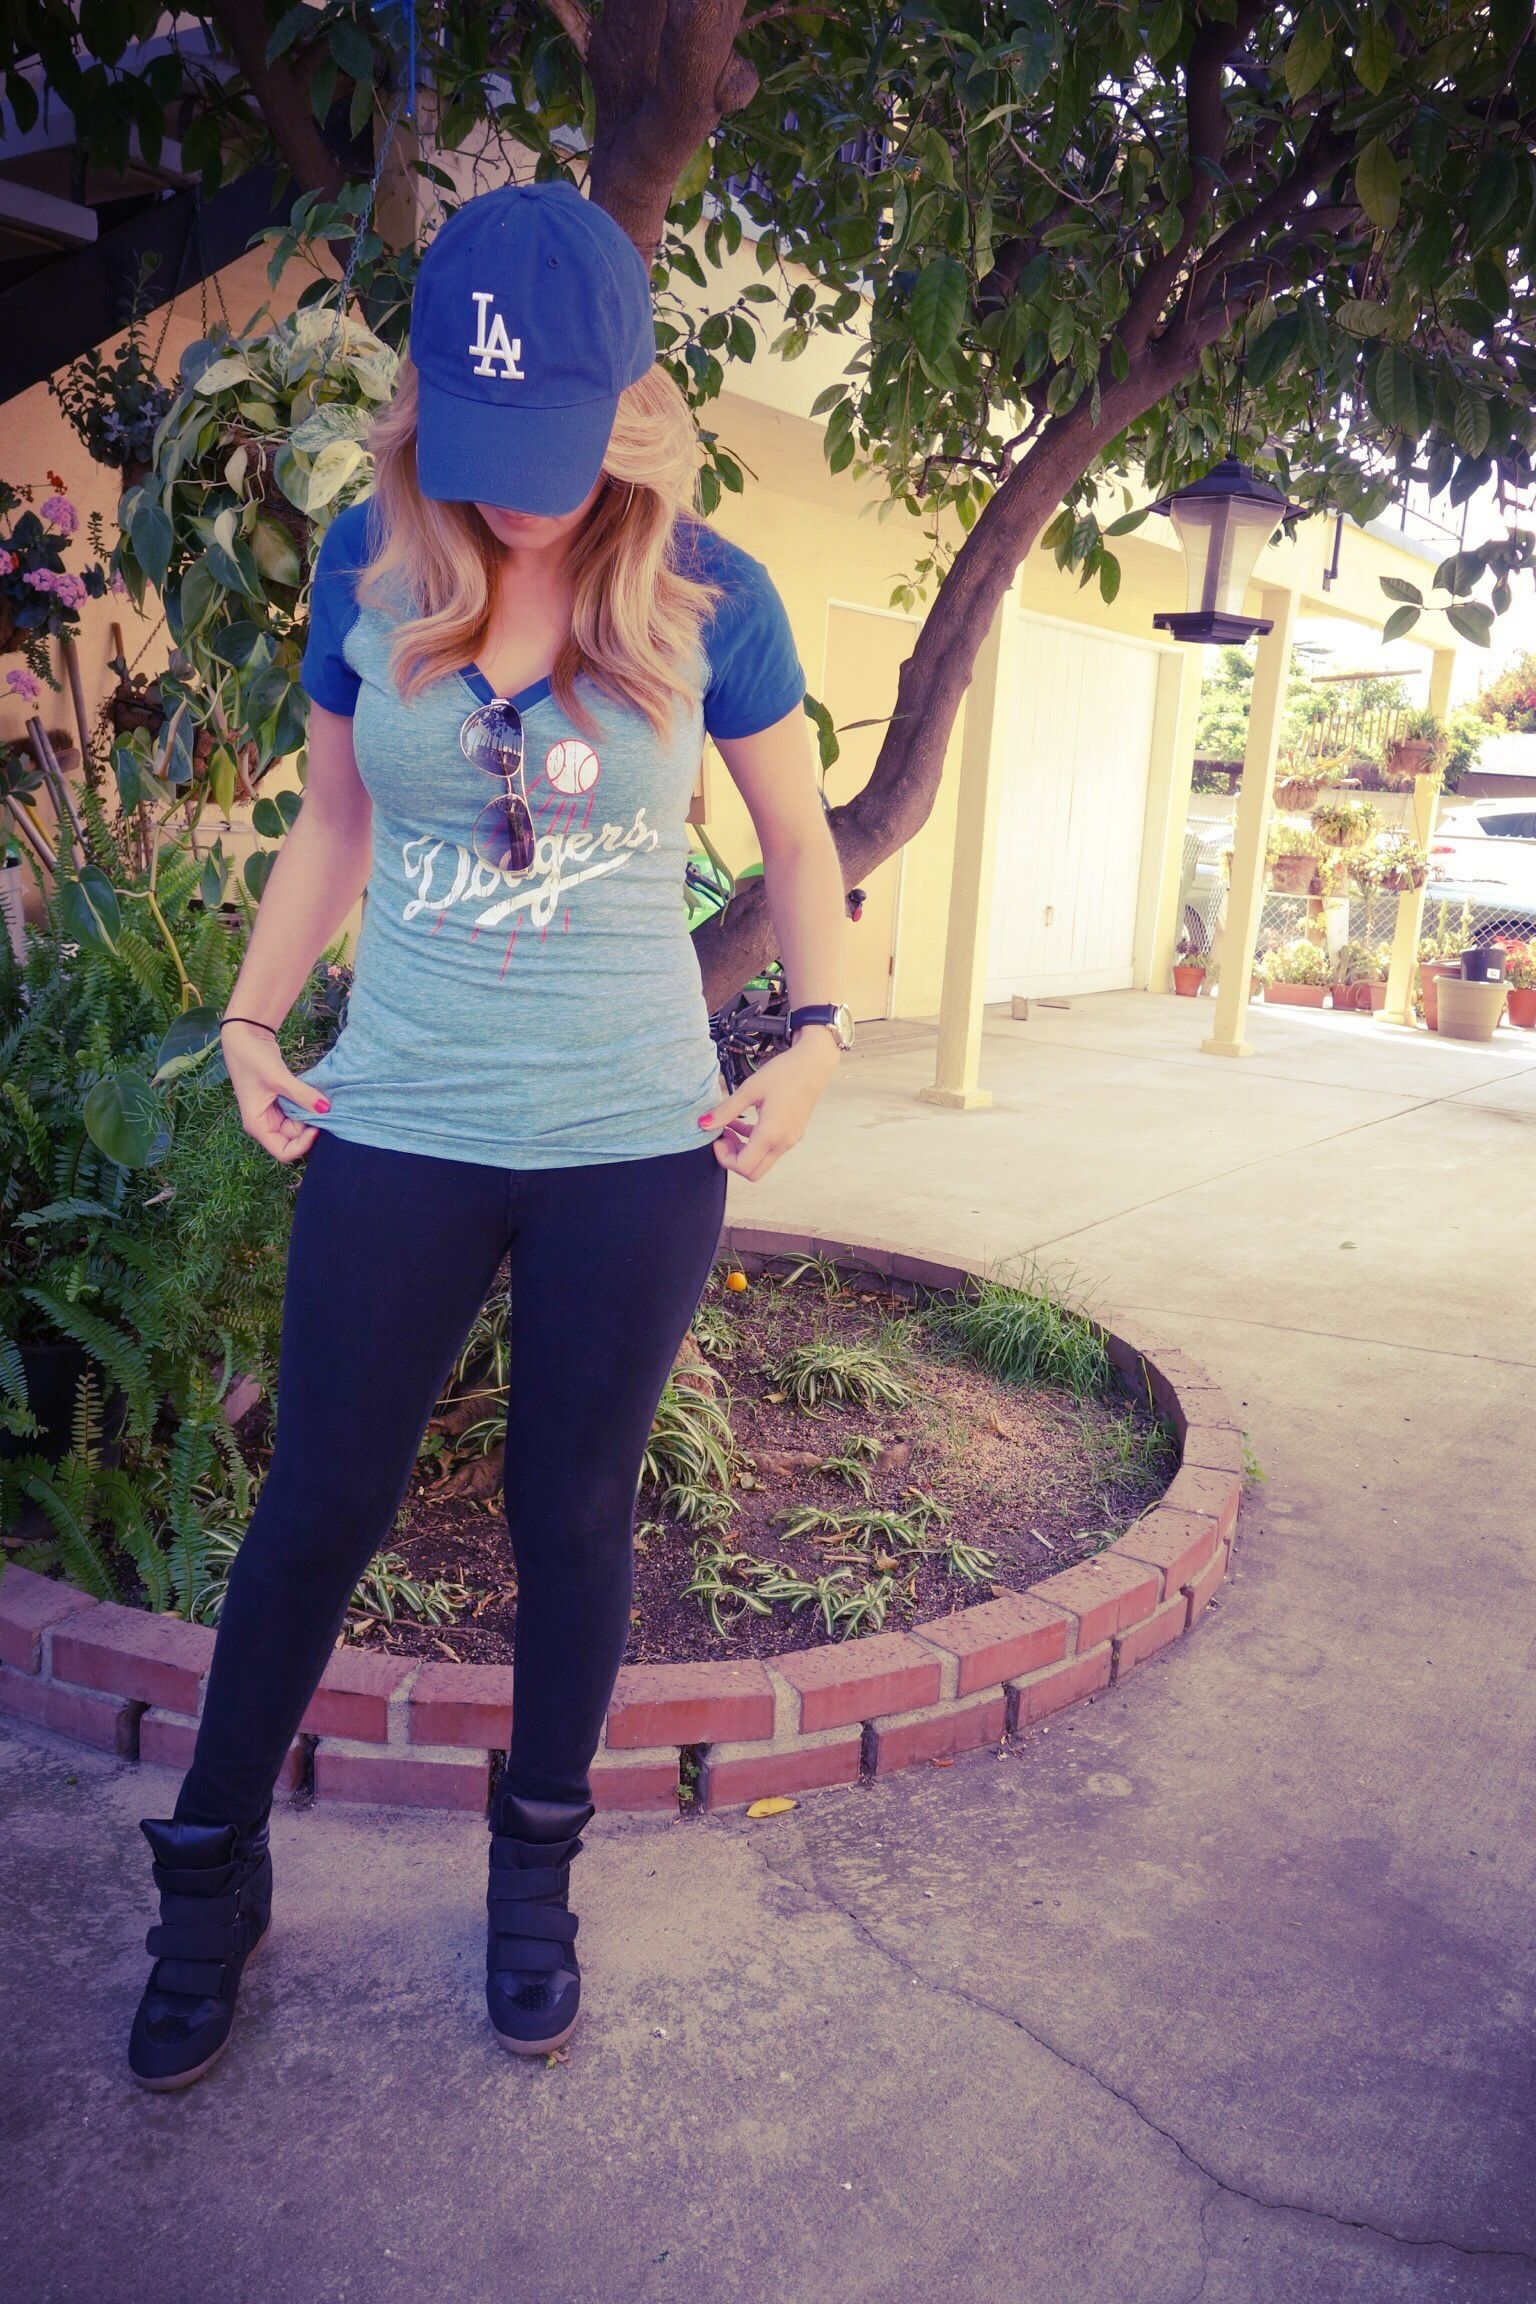 Pin By Stephanie On My Fashion Dodgers Outfit Gaming Clothes Hats For Women